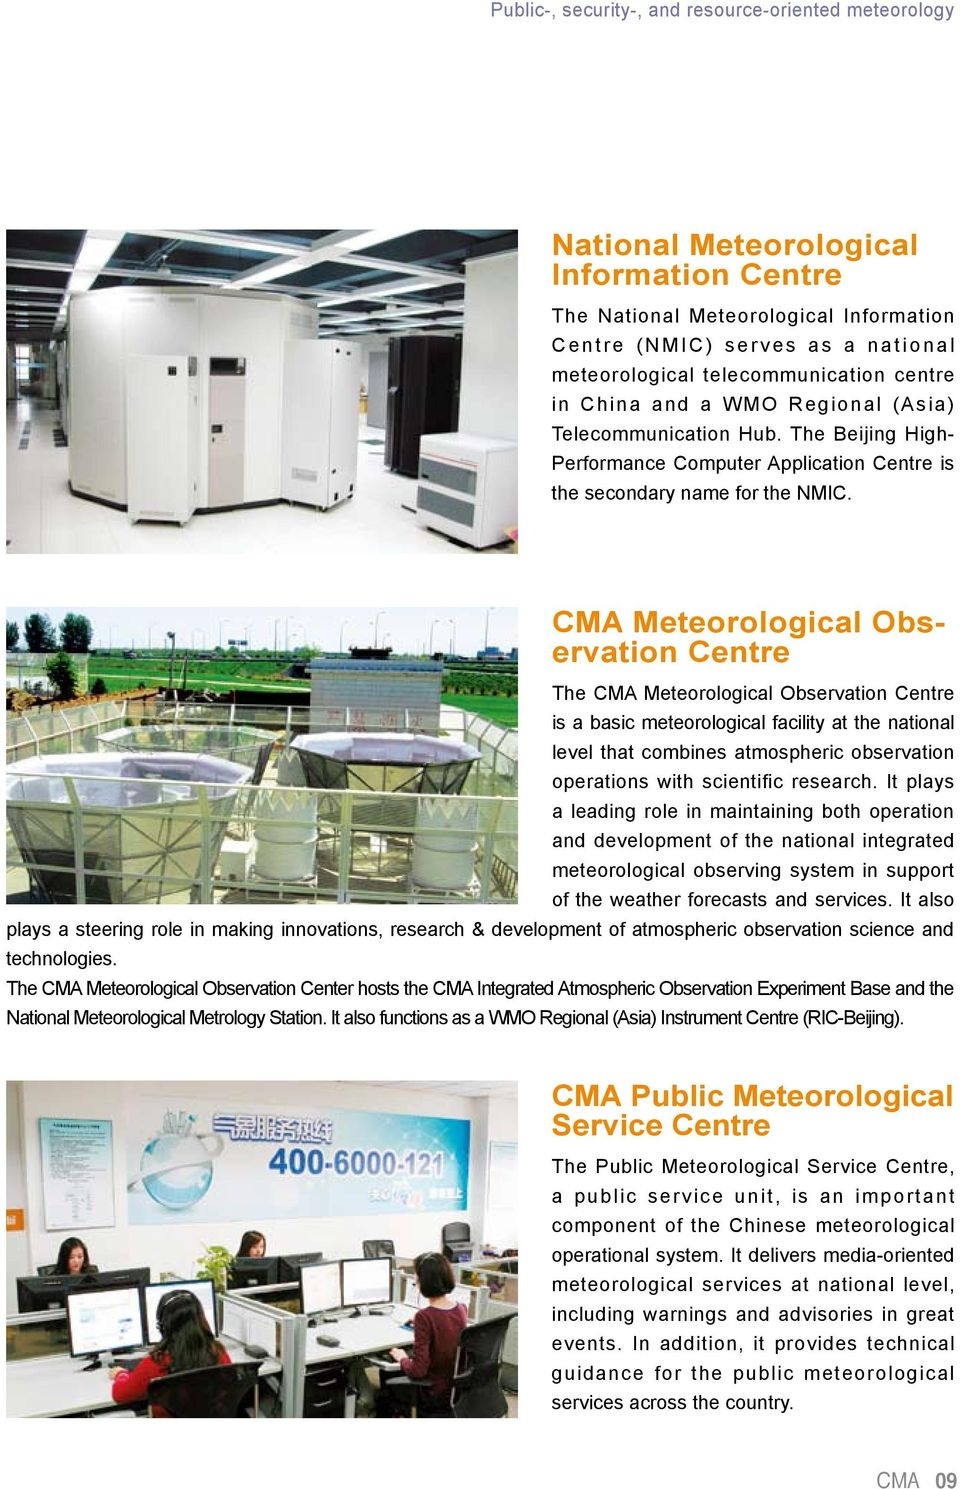 CMA Meteorological Observation Centre The CMA Meteorological Observation Centre is a basic meteorological facility at the national level that combines atmospheric observation operations with